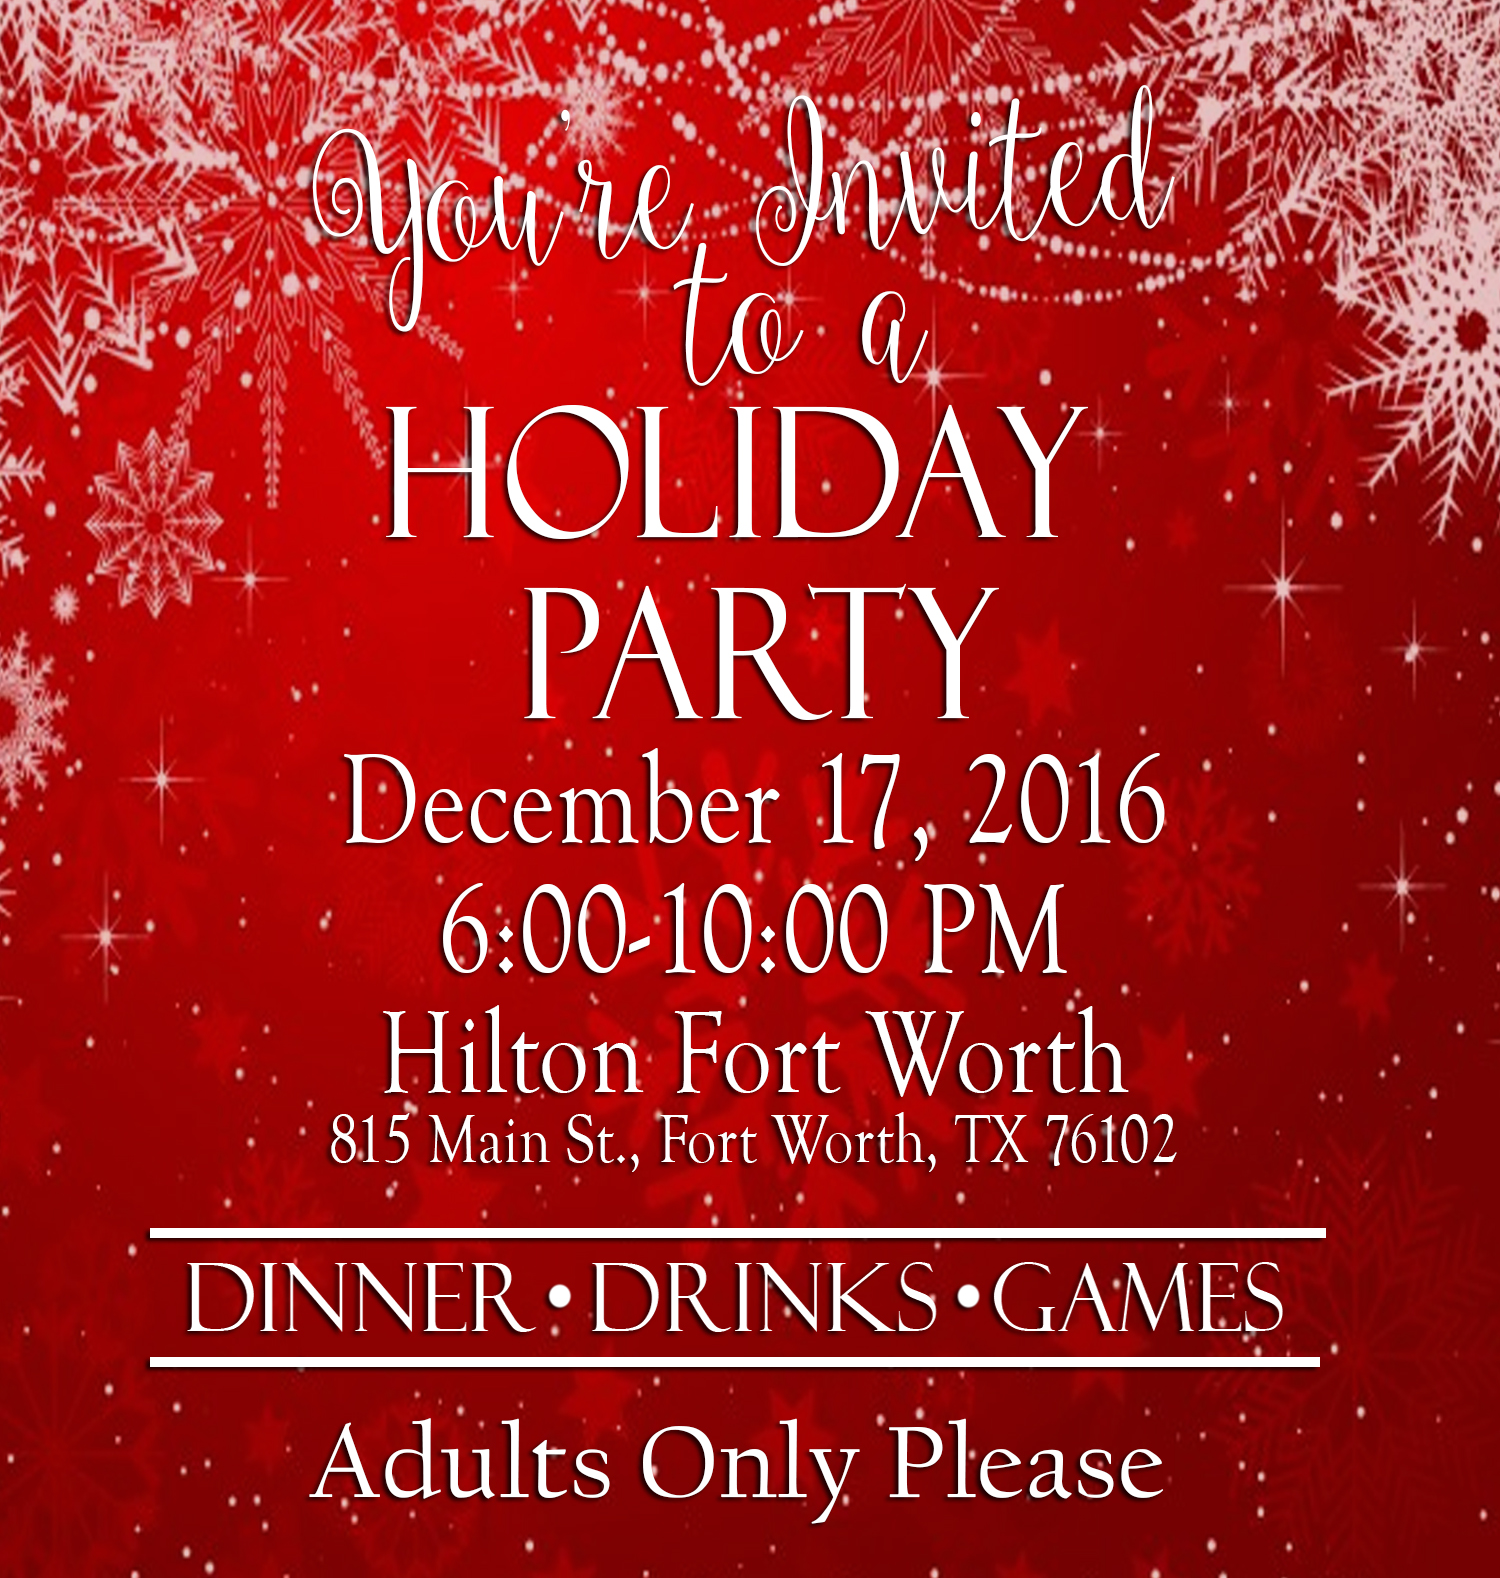 2016 holiday party invite